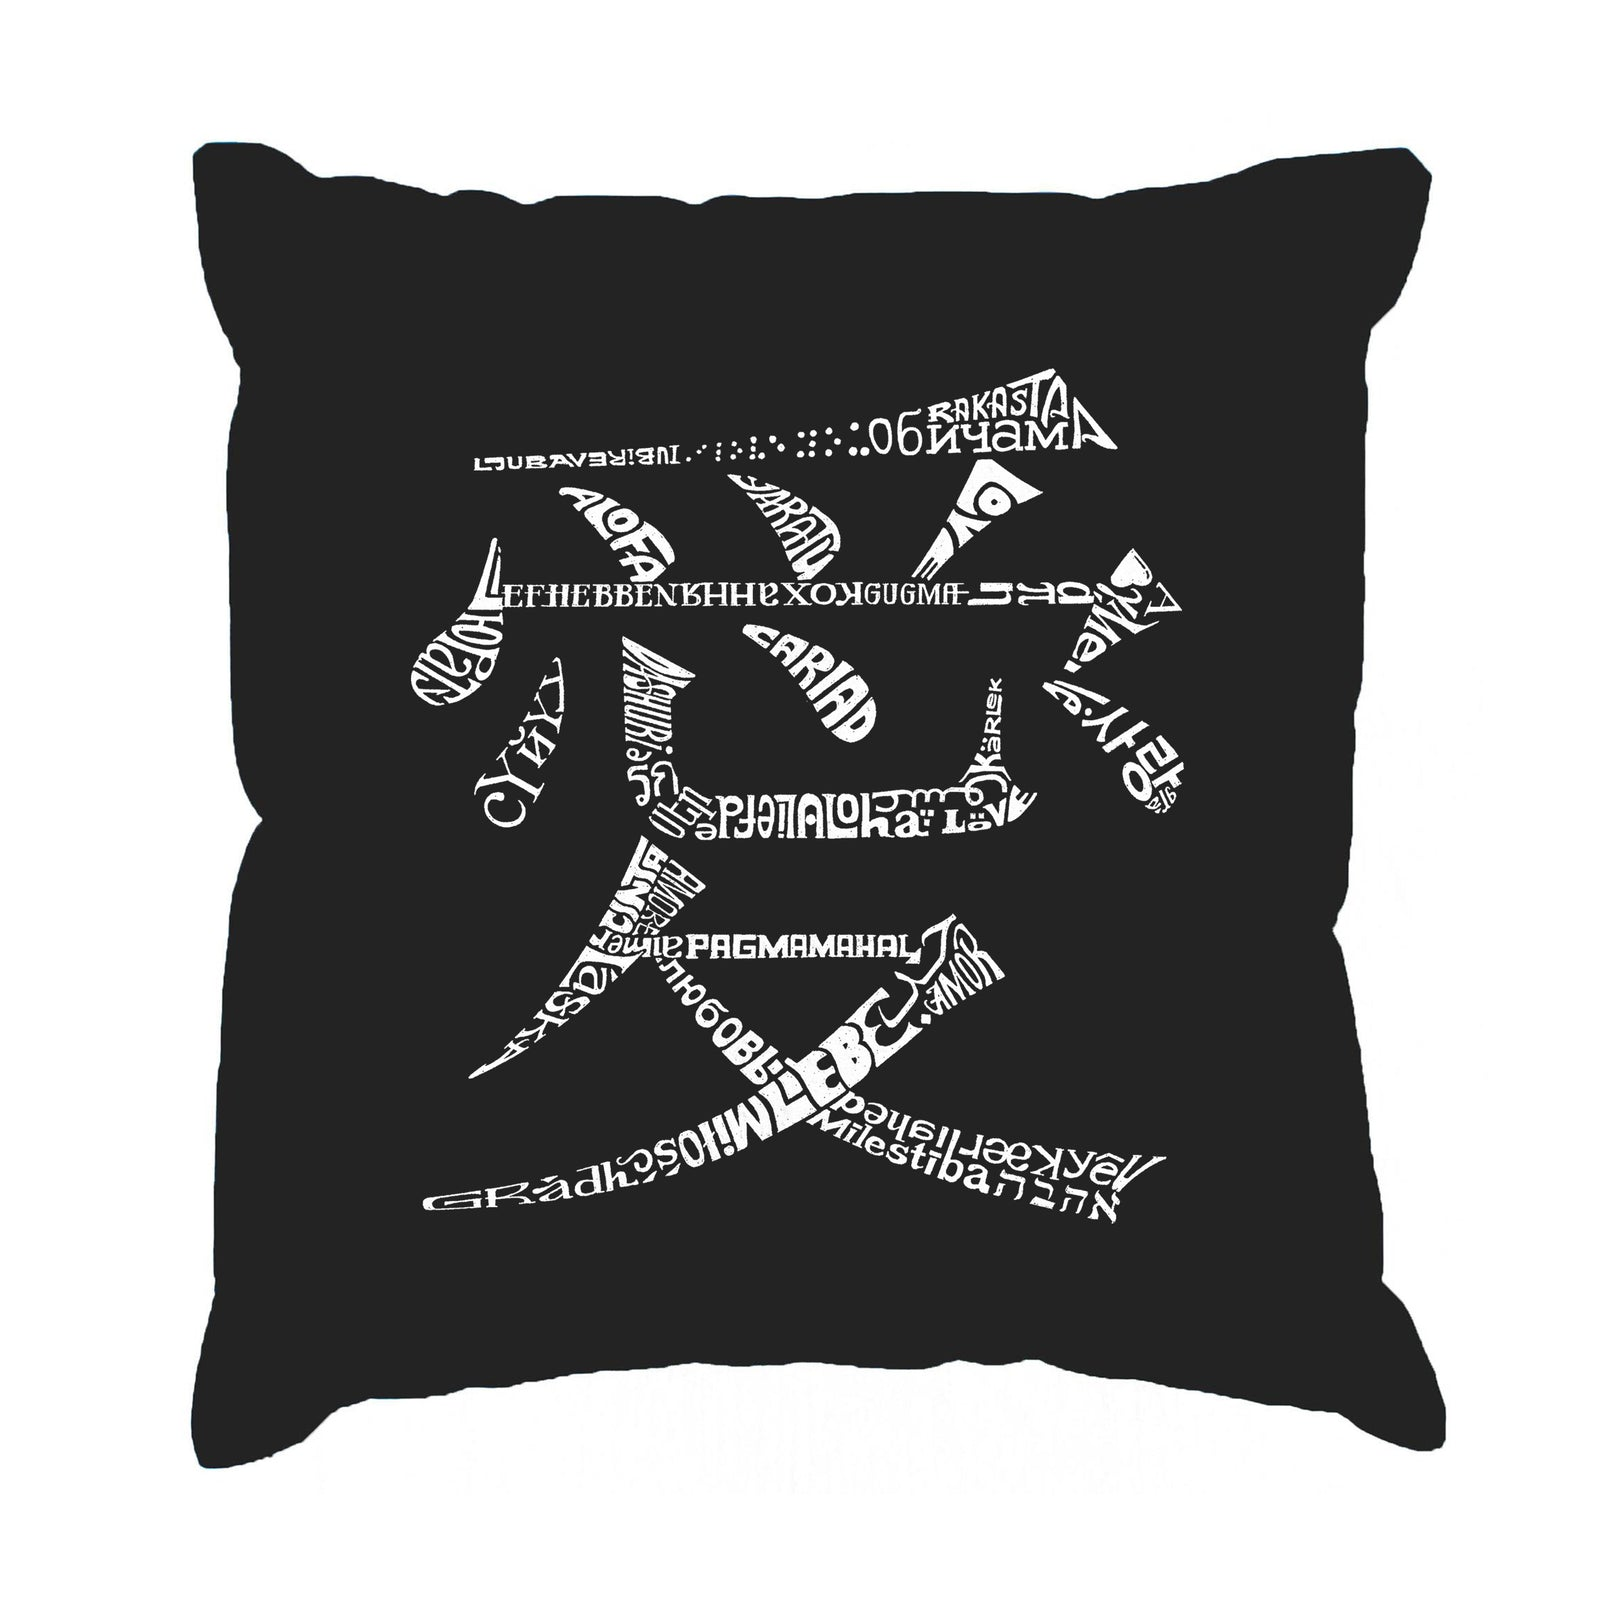 Throw Pillow Cover - The Word Love in 44 Languages